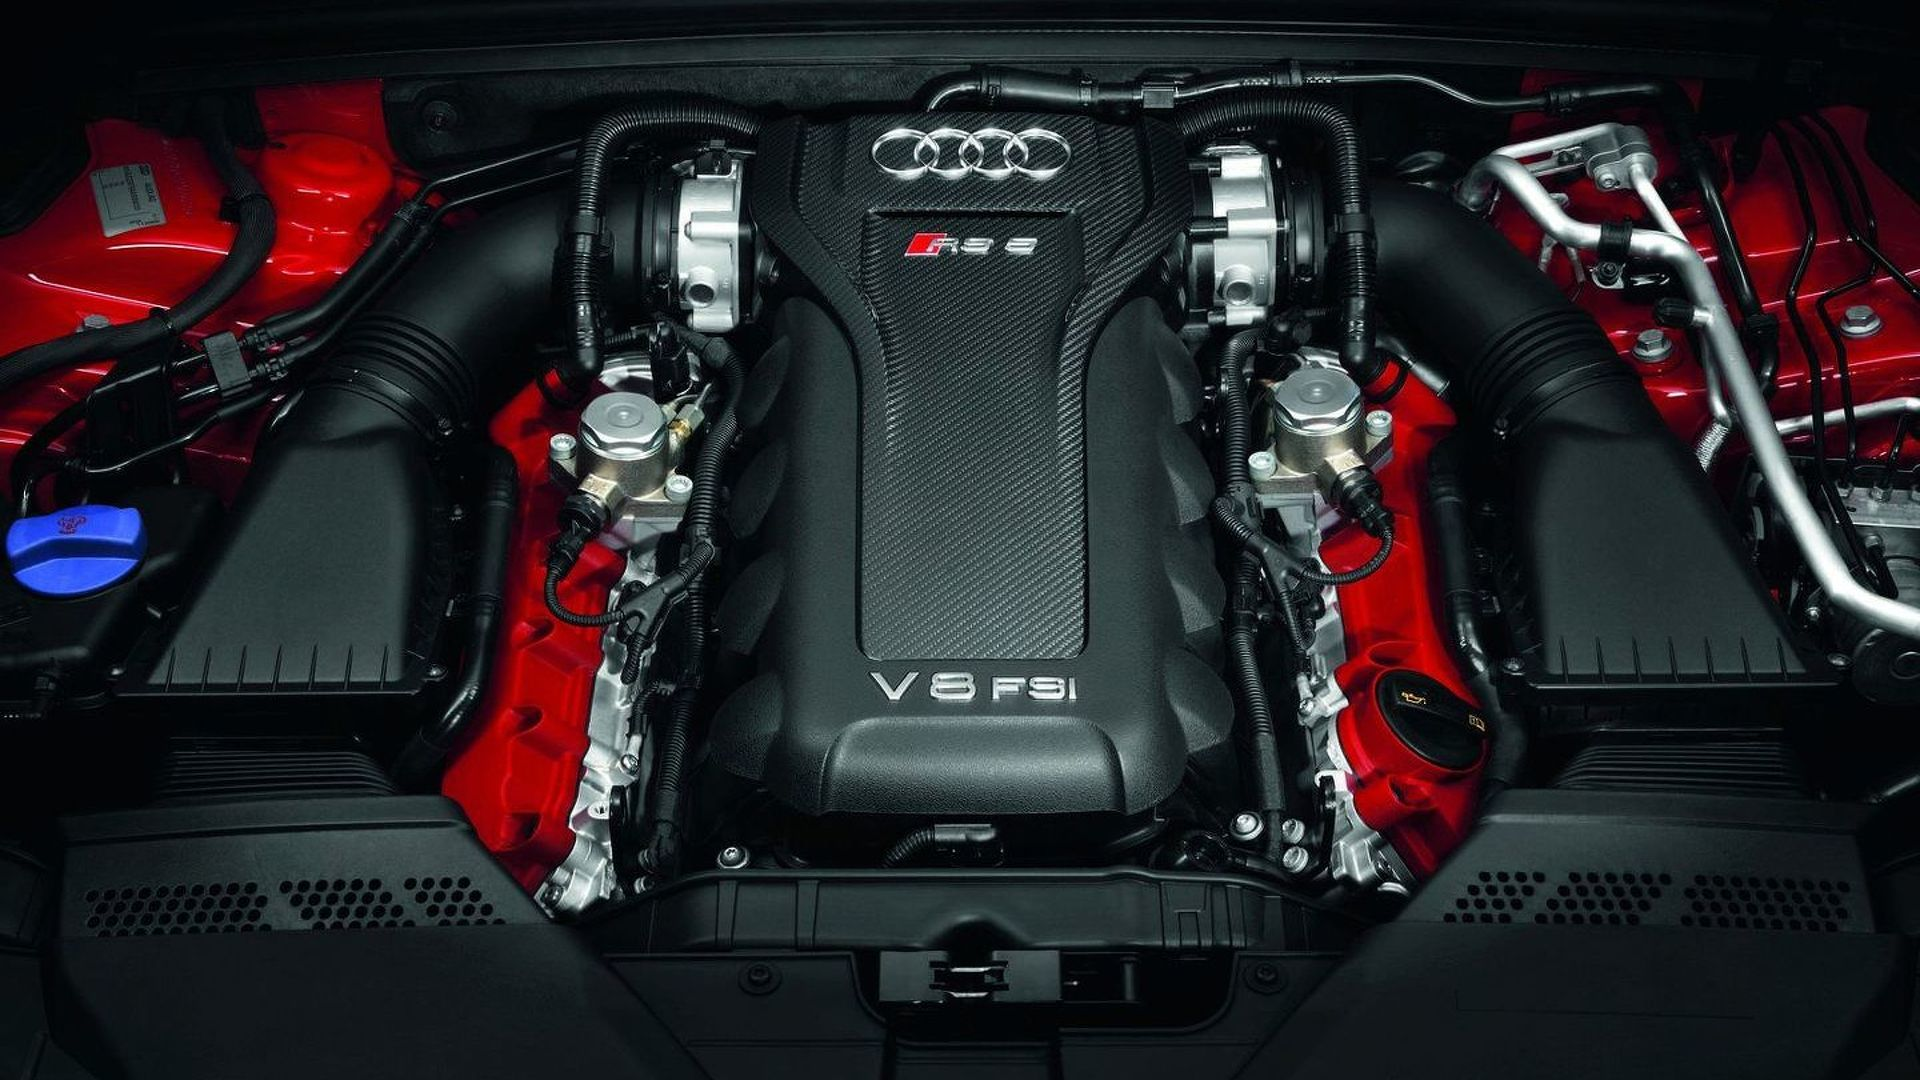 Official Audi RS5 Details Released - 4.2-liter V8 with 450 PS / 444 hp